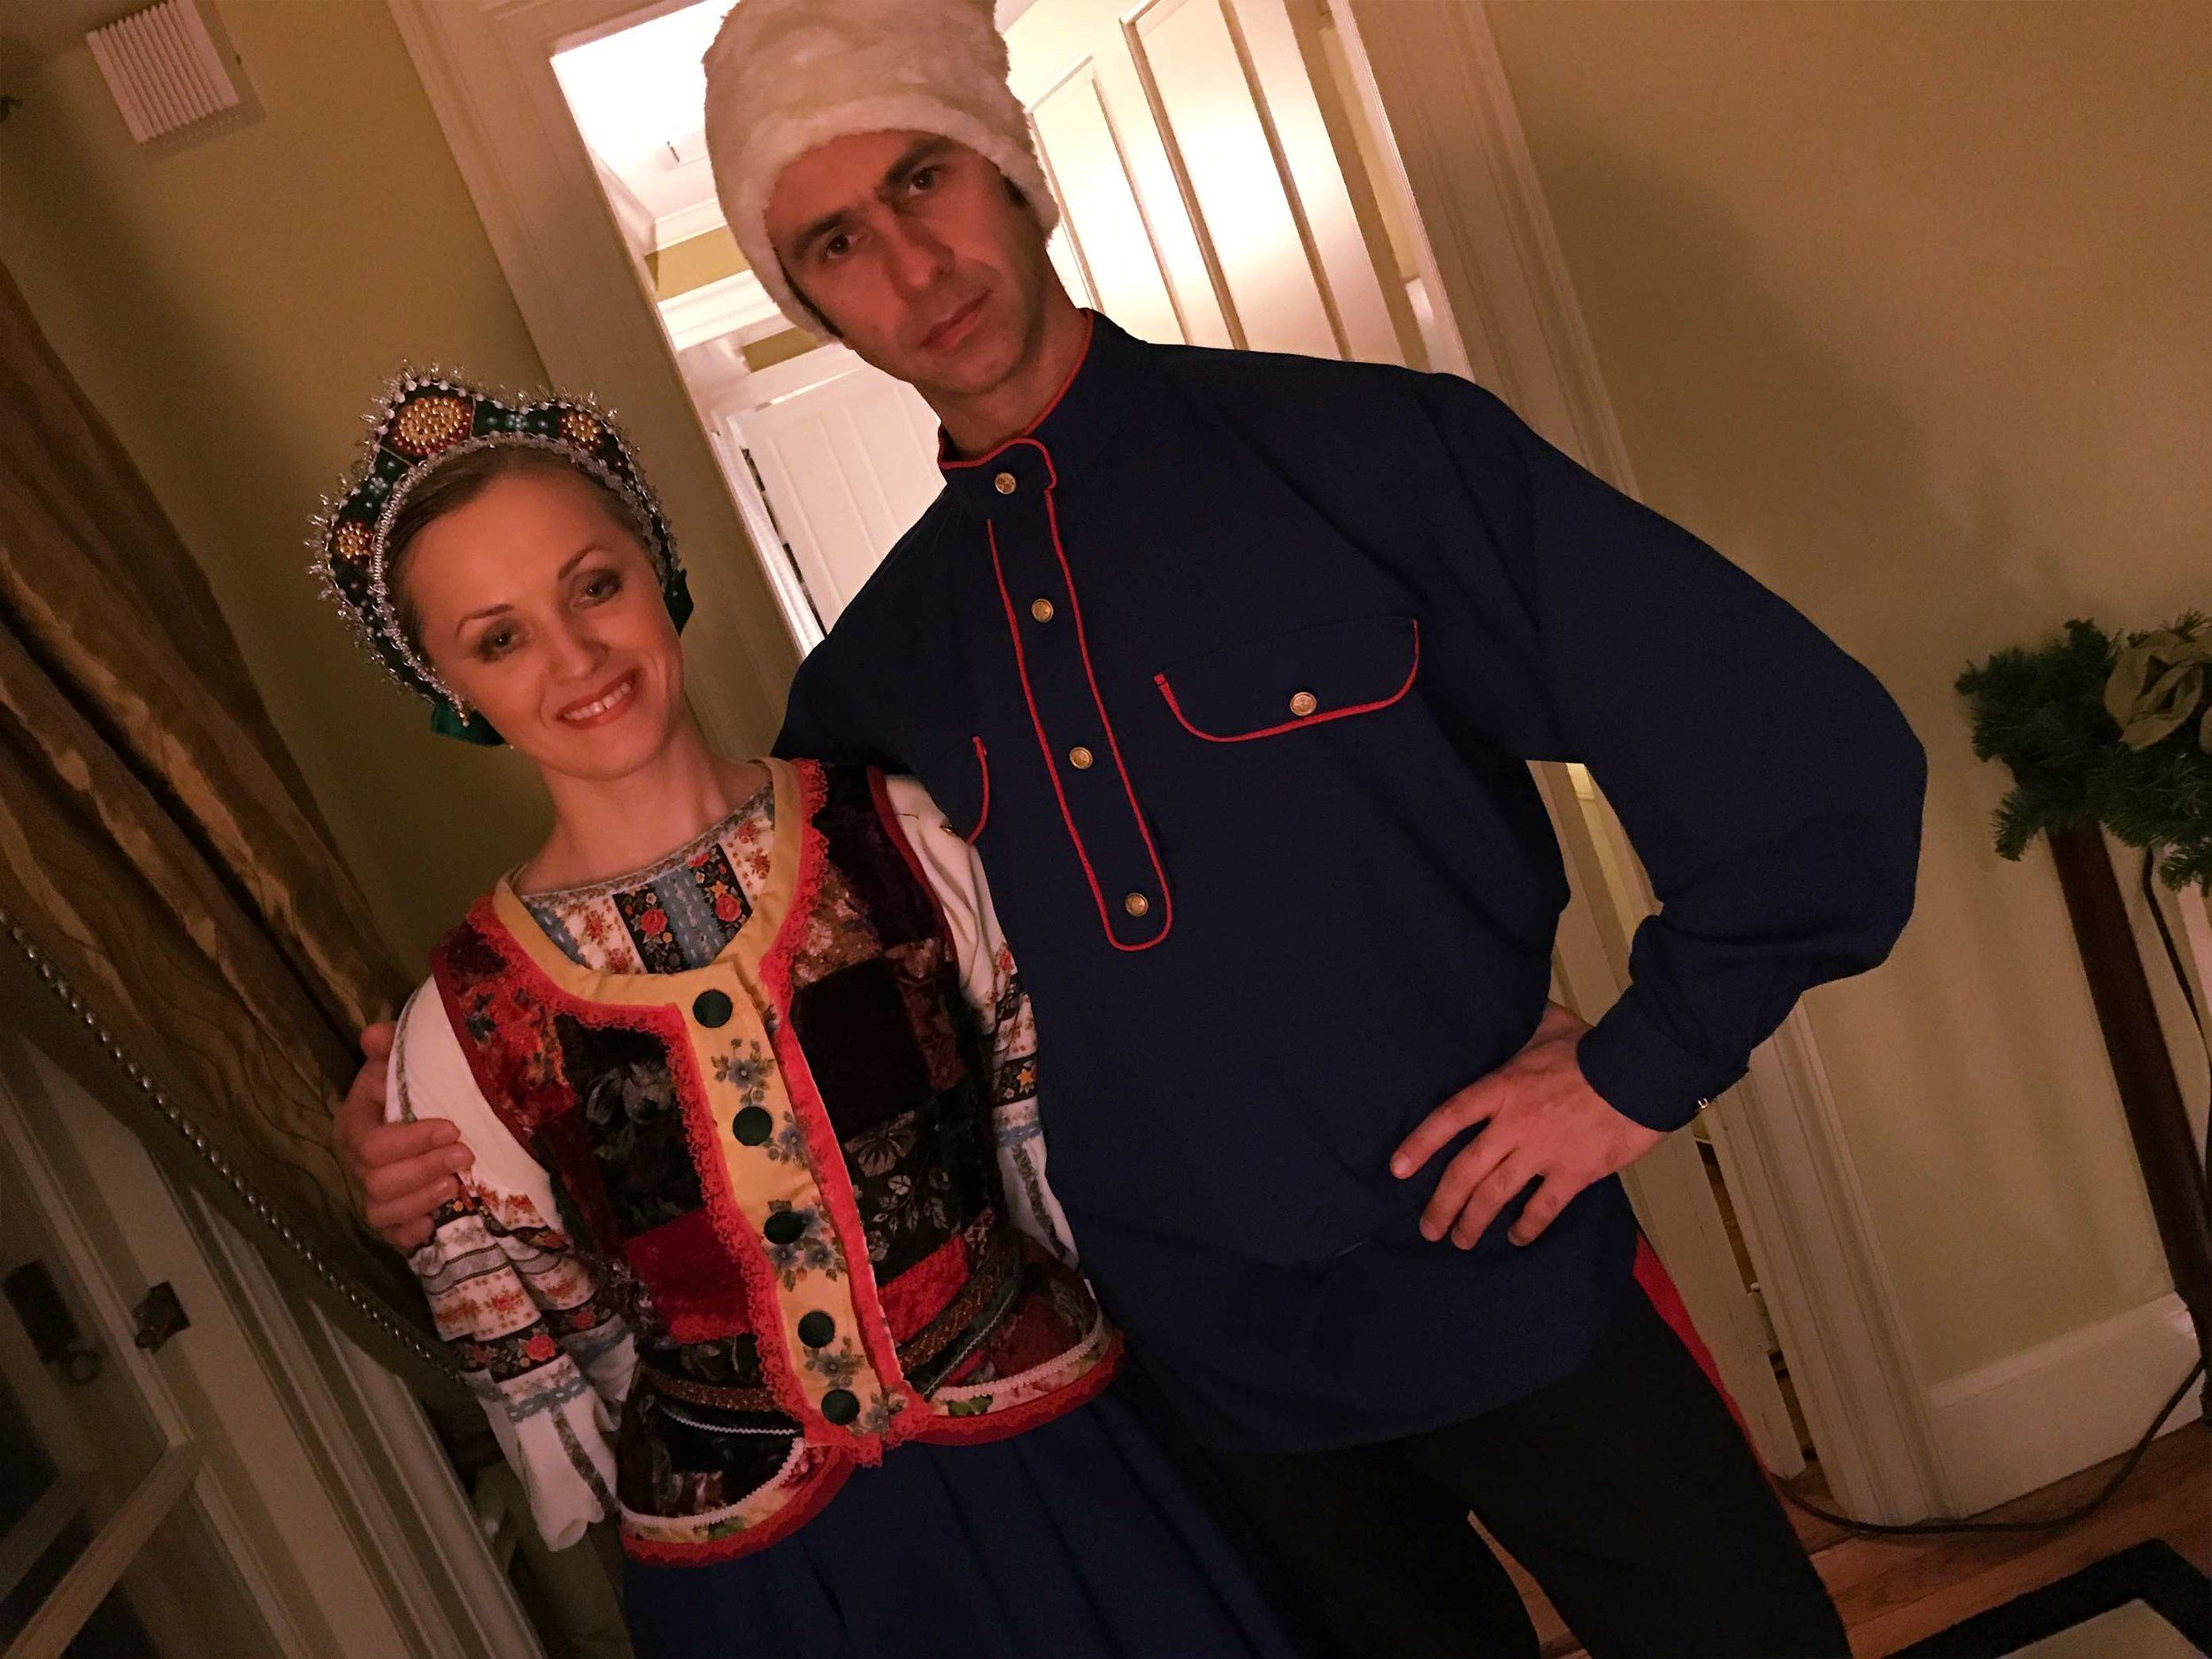 Russian Cosack dancers at New Years Eve party in Boston